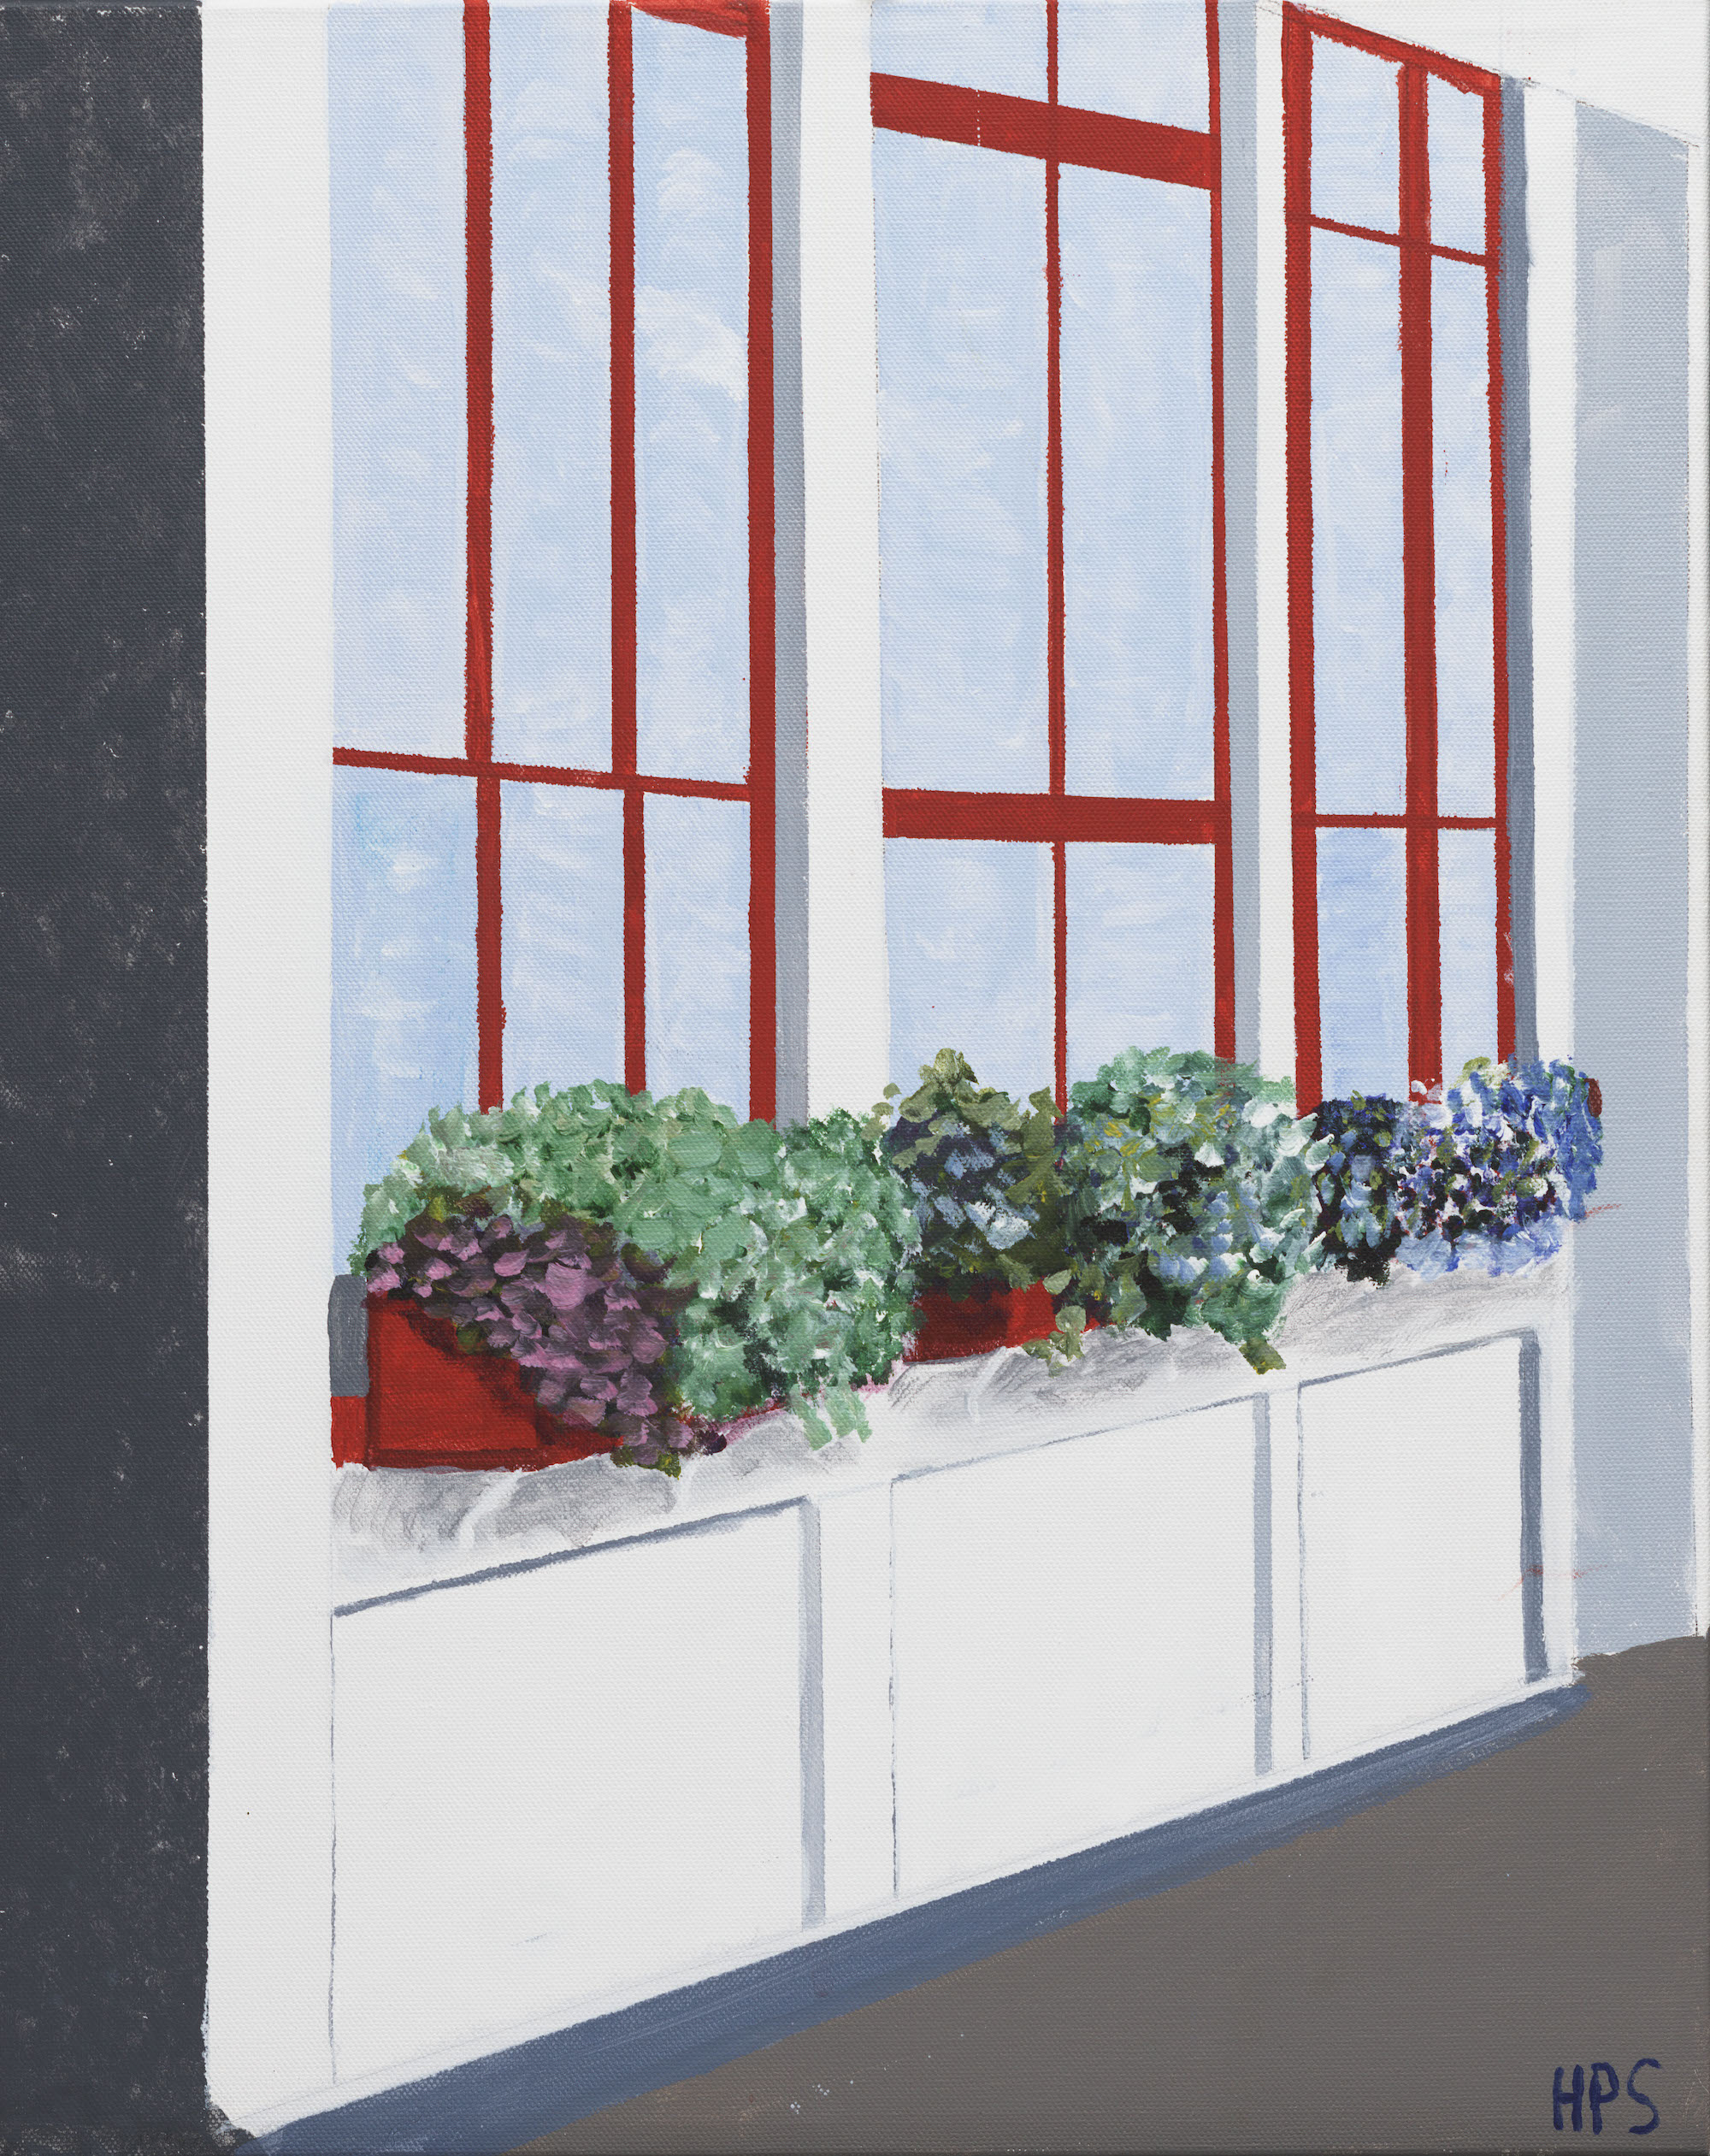 acrylic art on canvas landscape window boxes